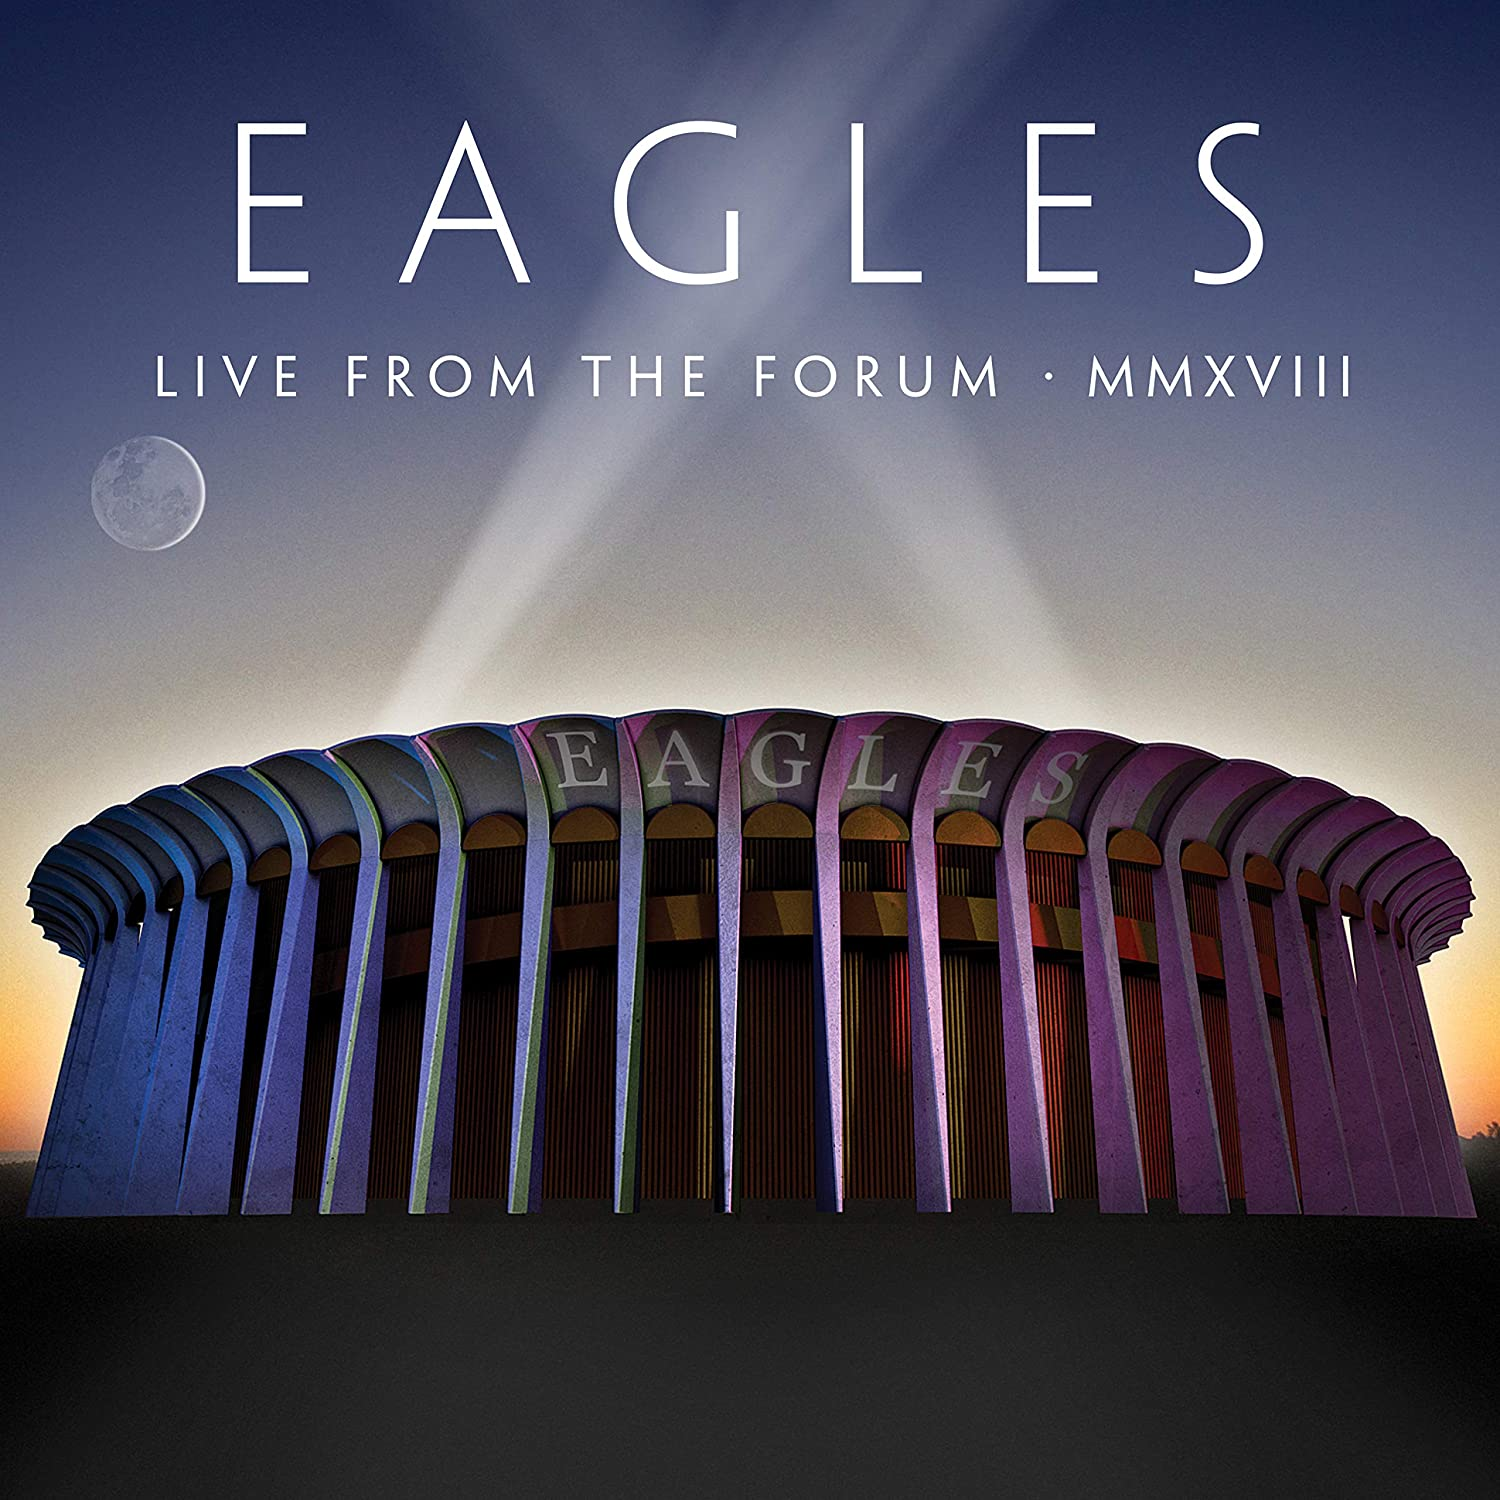 Copertina Vinile 33 giri Live from the Forum Mmxviii [4 LP] di Eagles